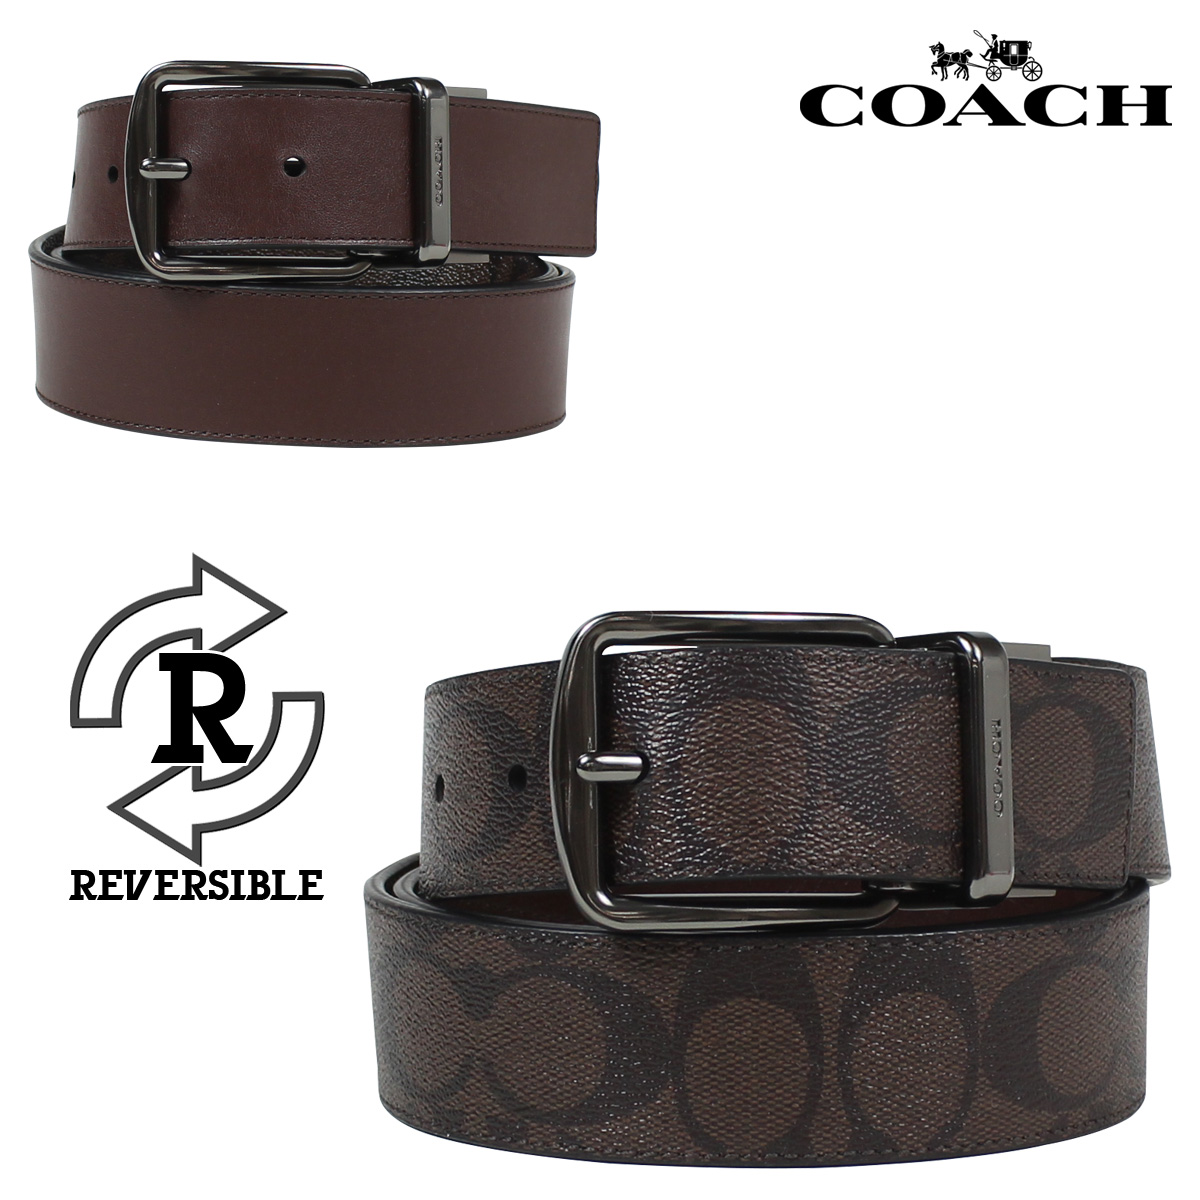 f6d1422180a95  SOLD OUT  coach COACH men s belts leather belt reversible leather F64839  mahogany x Brown  8 23 back in stock